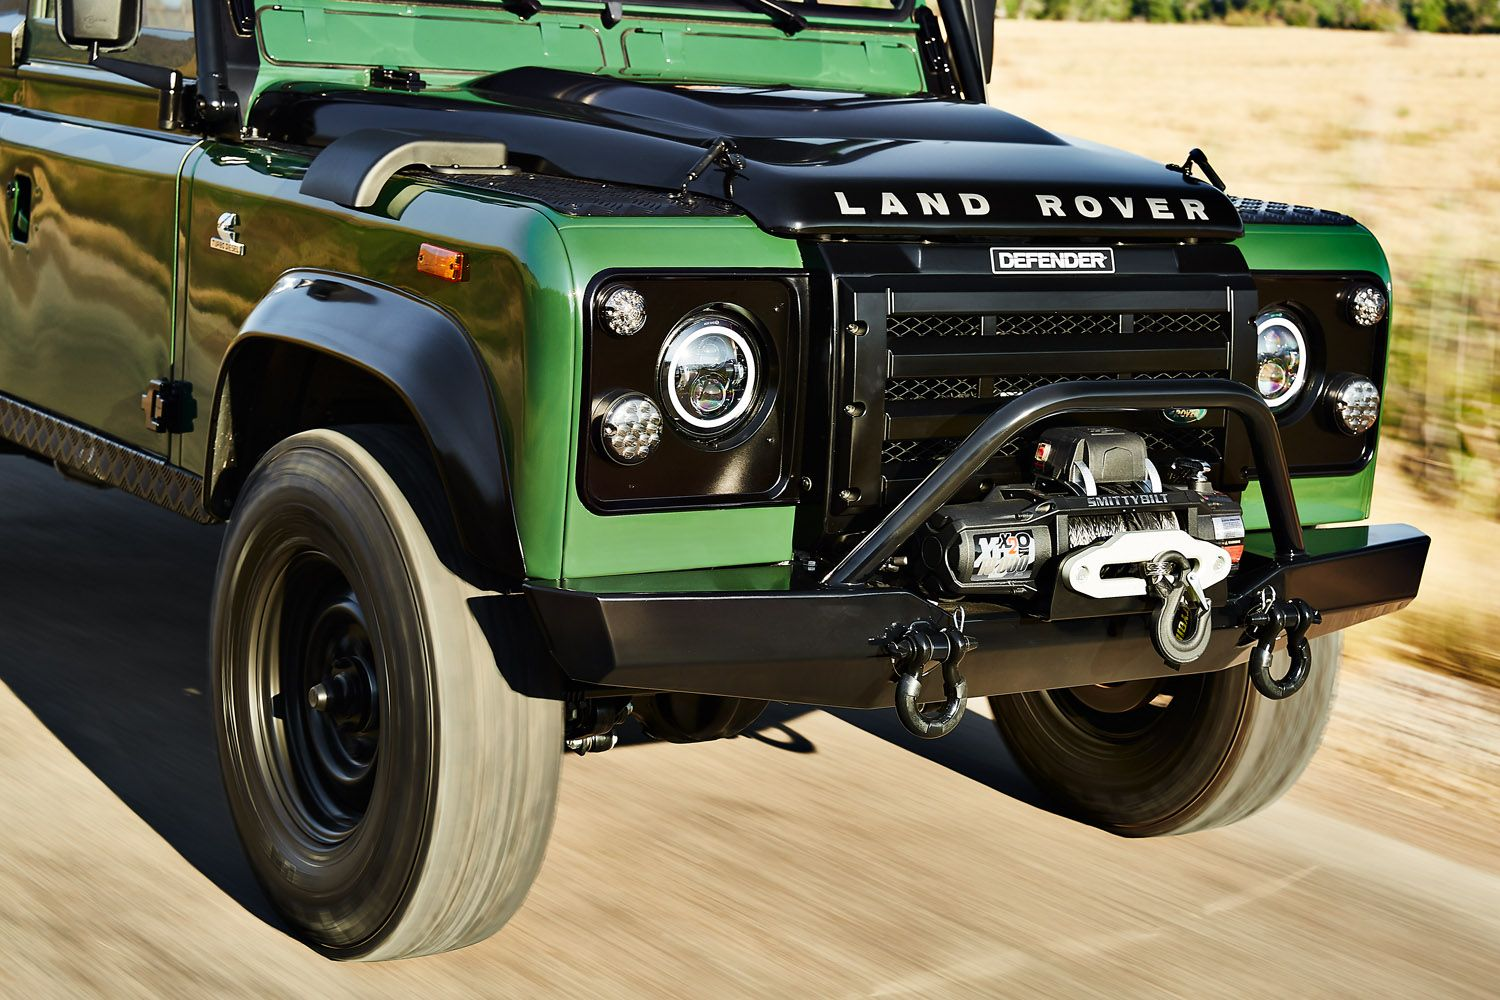 20180808_AUTOMOTIVE_LANDROVER_0339.jpg